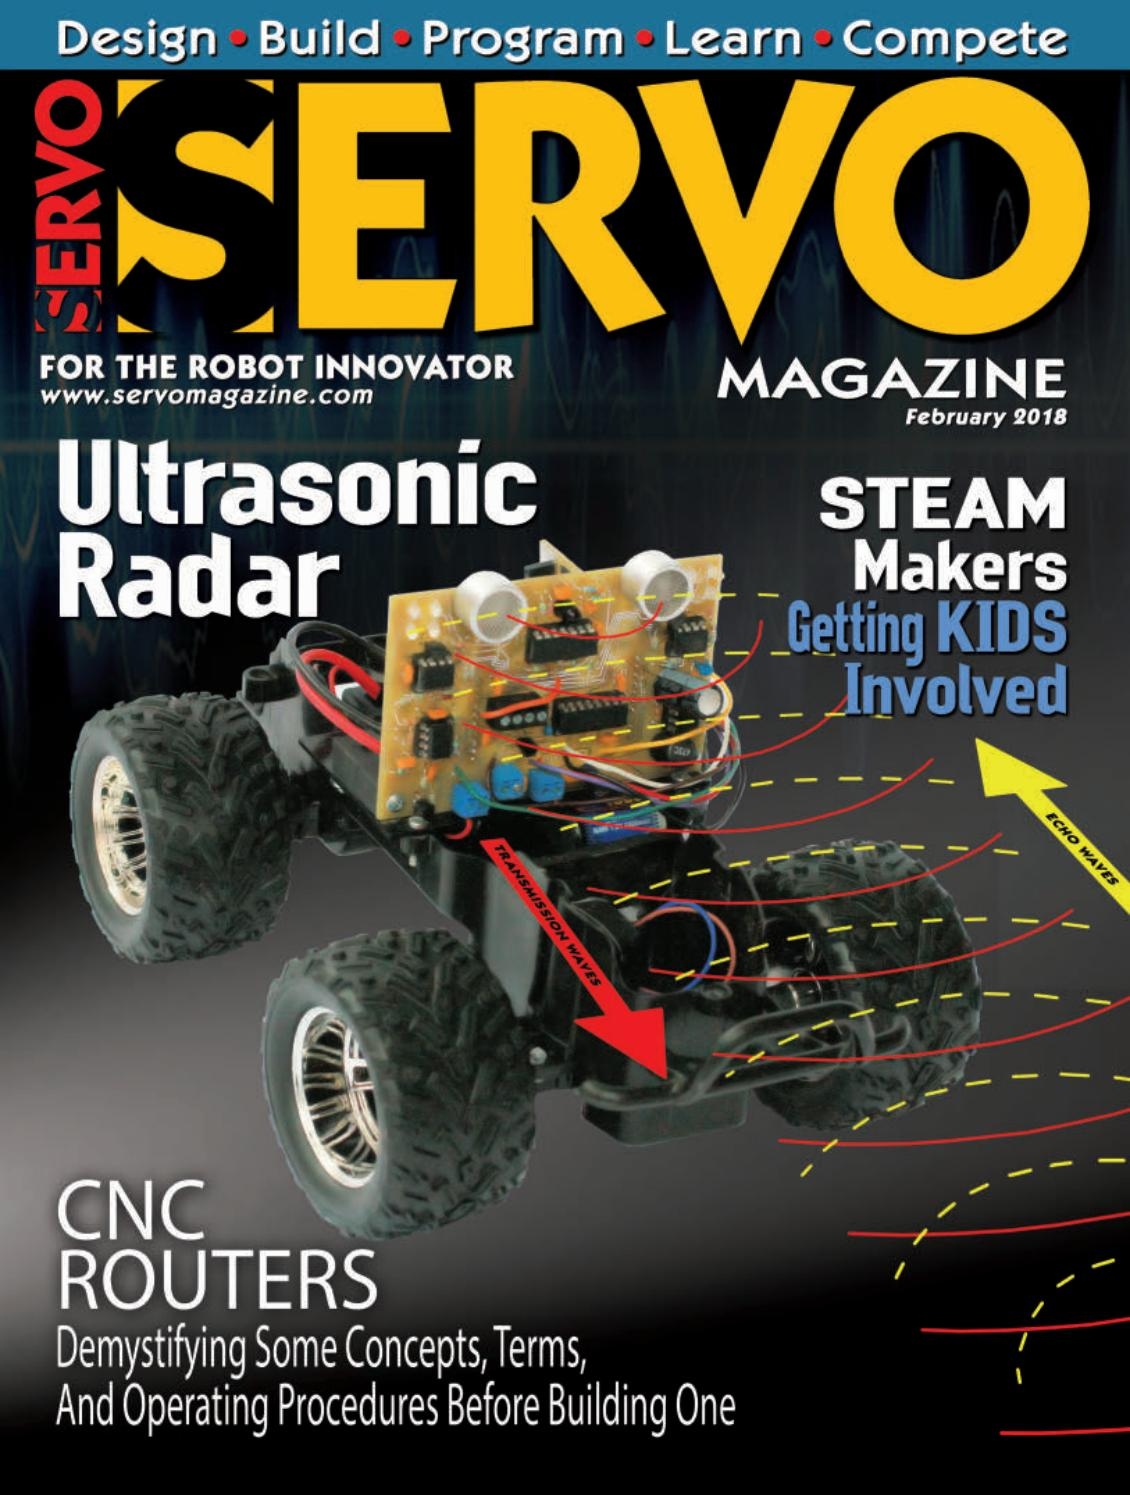 18dfvdfv By Dfvdfbeerer Issuu F12 Selfdriving Gps Following Car Embedded Systems Learning